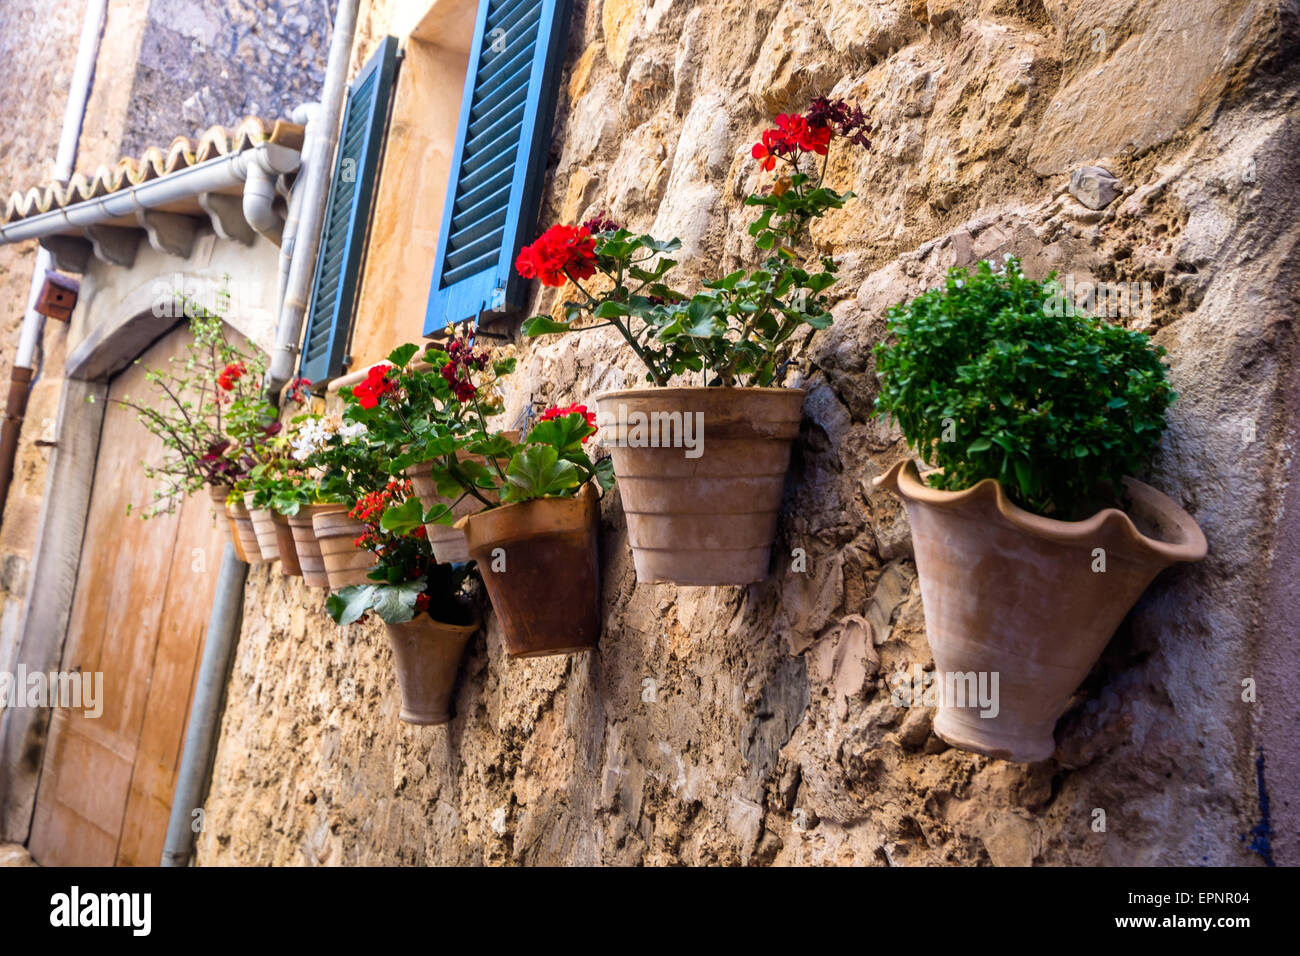 Greetings From Mallorca The Beautiful Island In Spain Stock Photo